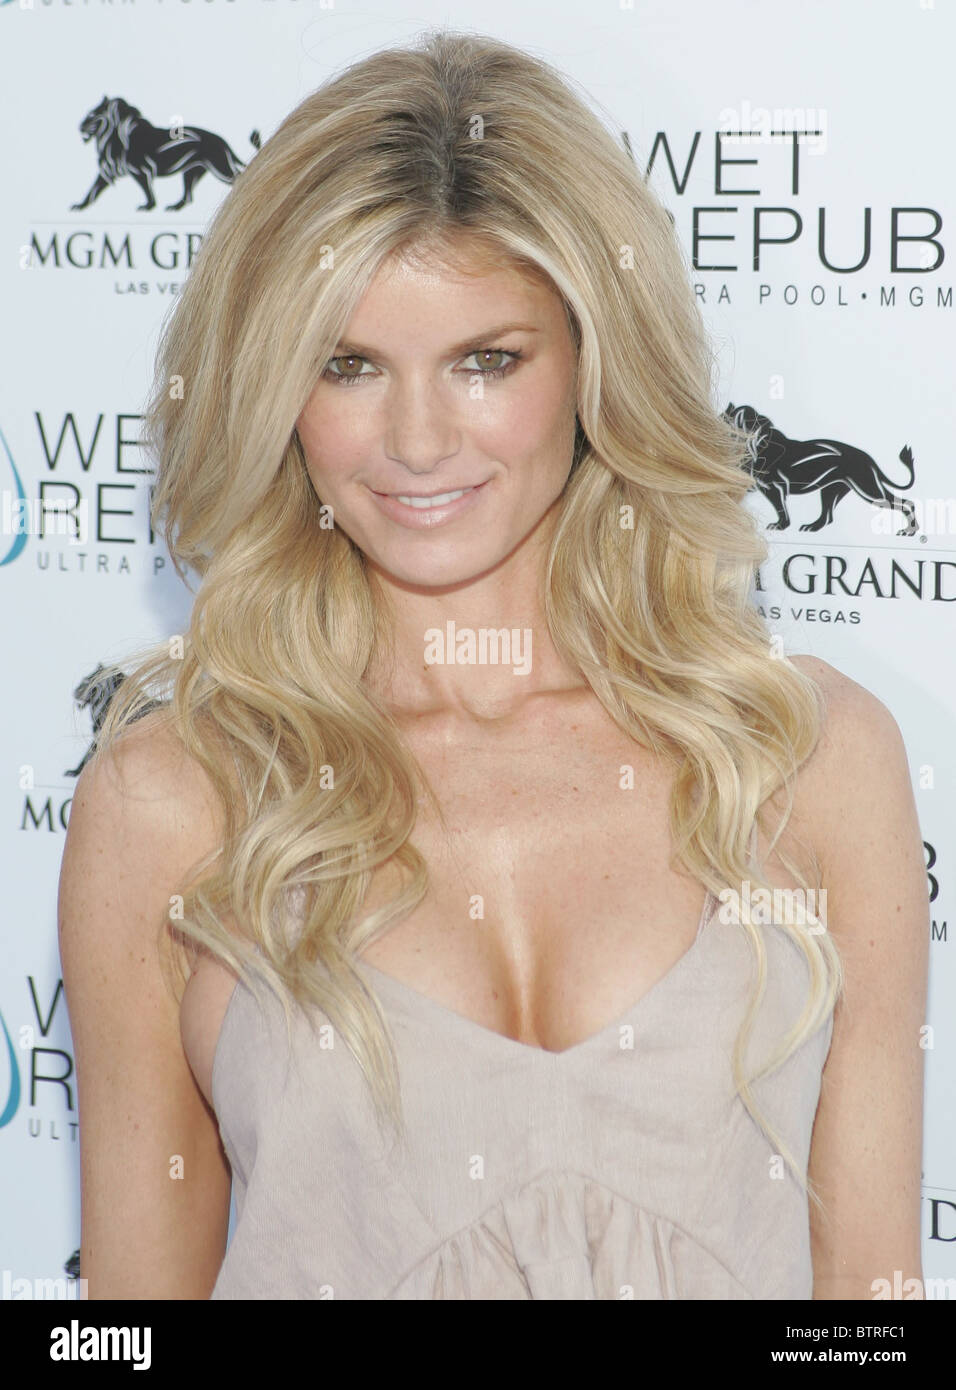 Marisa Miller at WET REPUBLIC - Stock Image